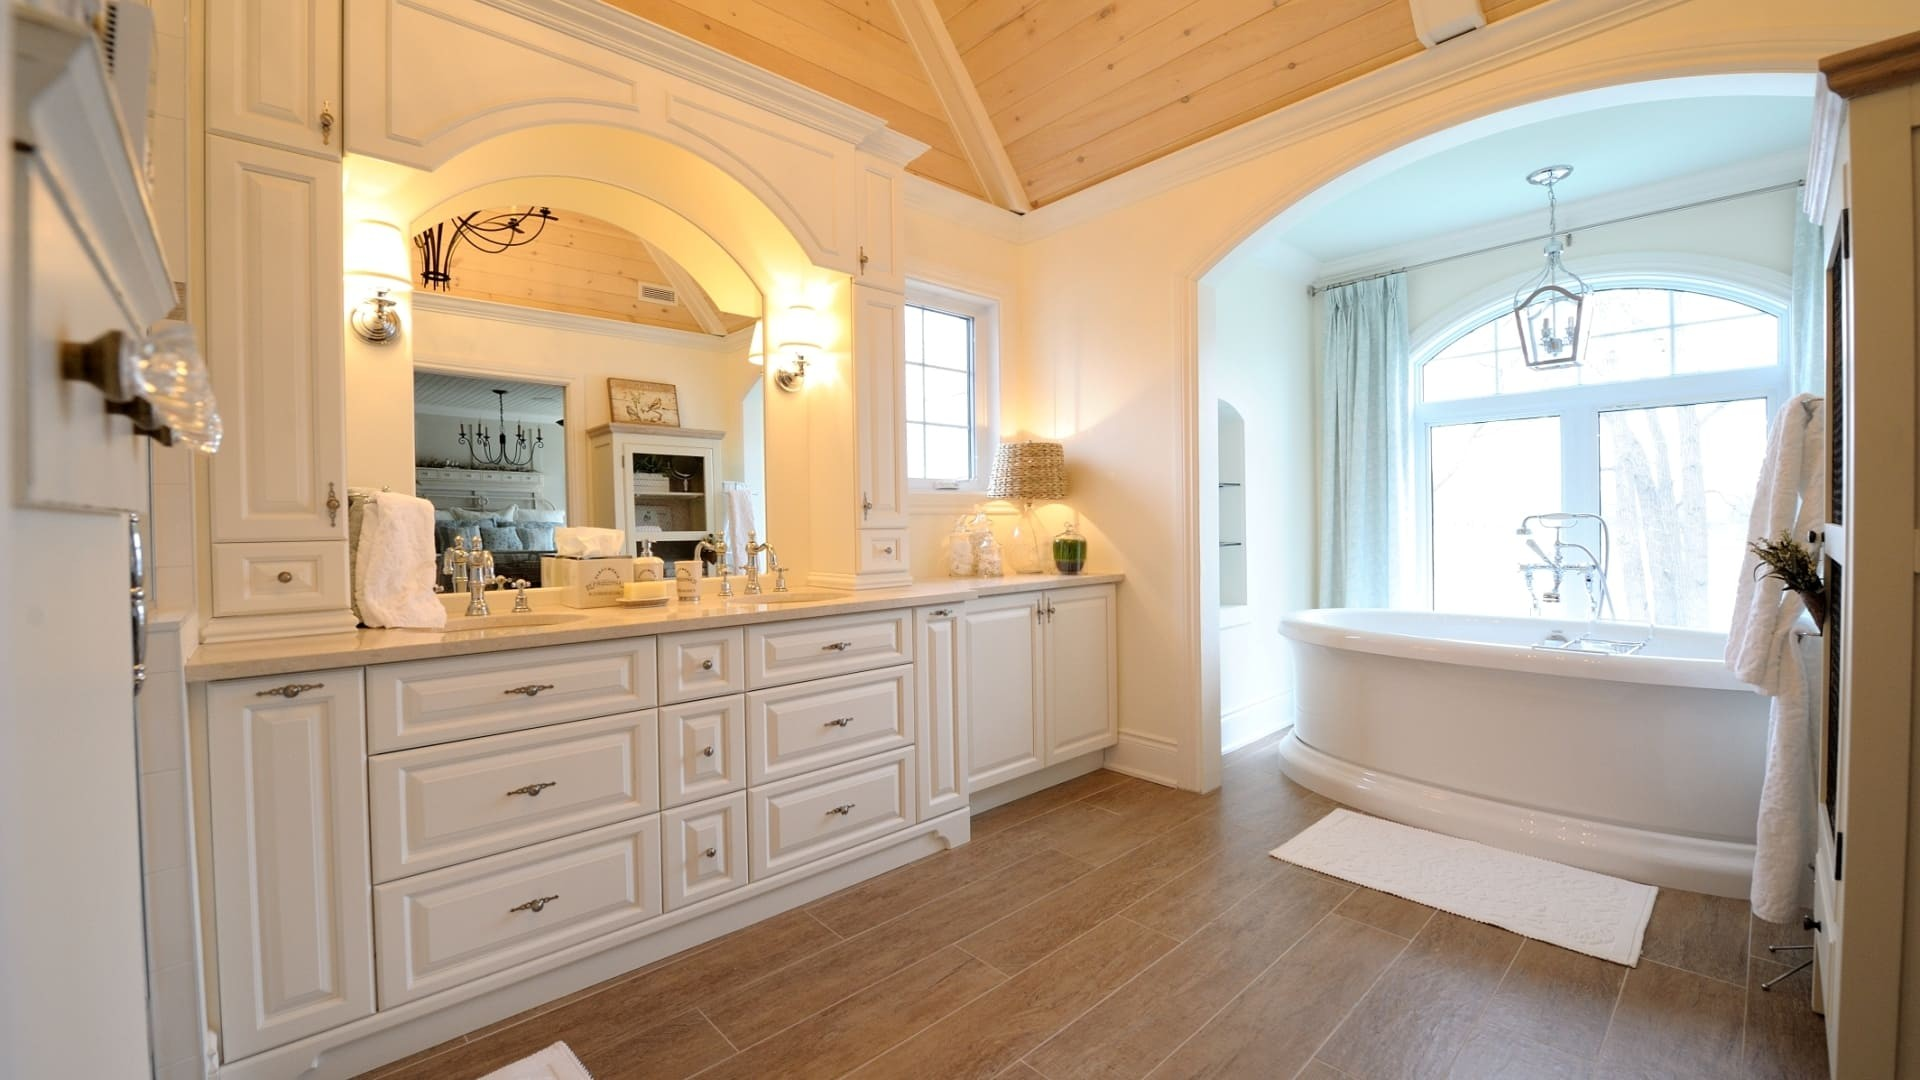 Luxury Country Style Bathrooms Model - Home Sweet Home ... on Model Bathroom Ideas  id=99026